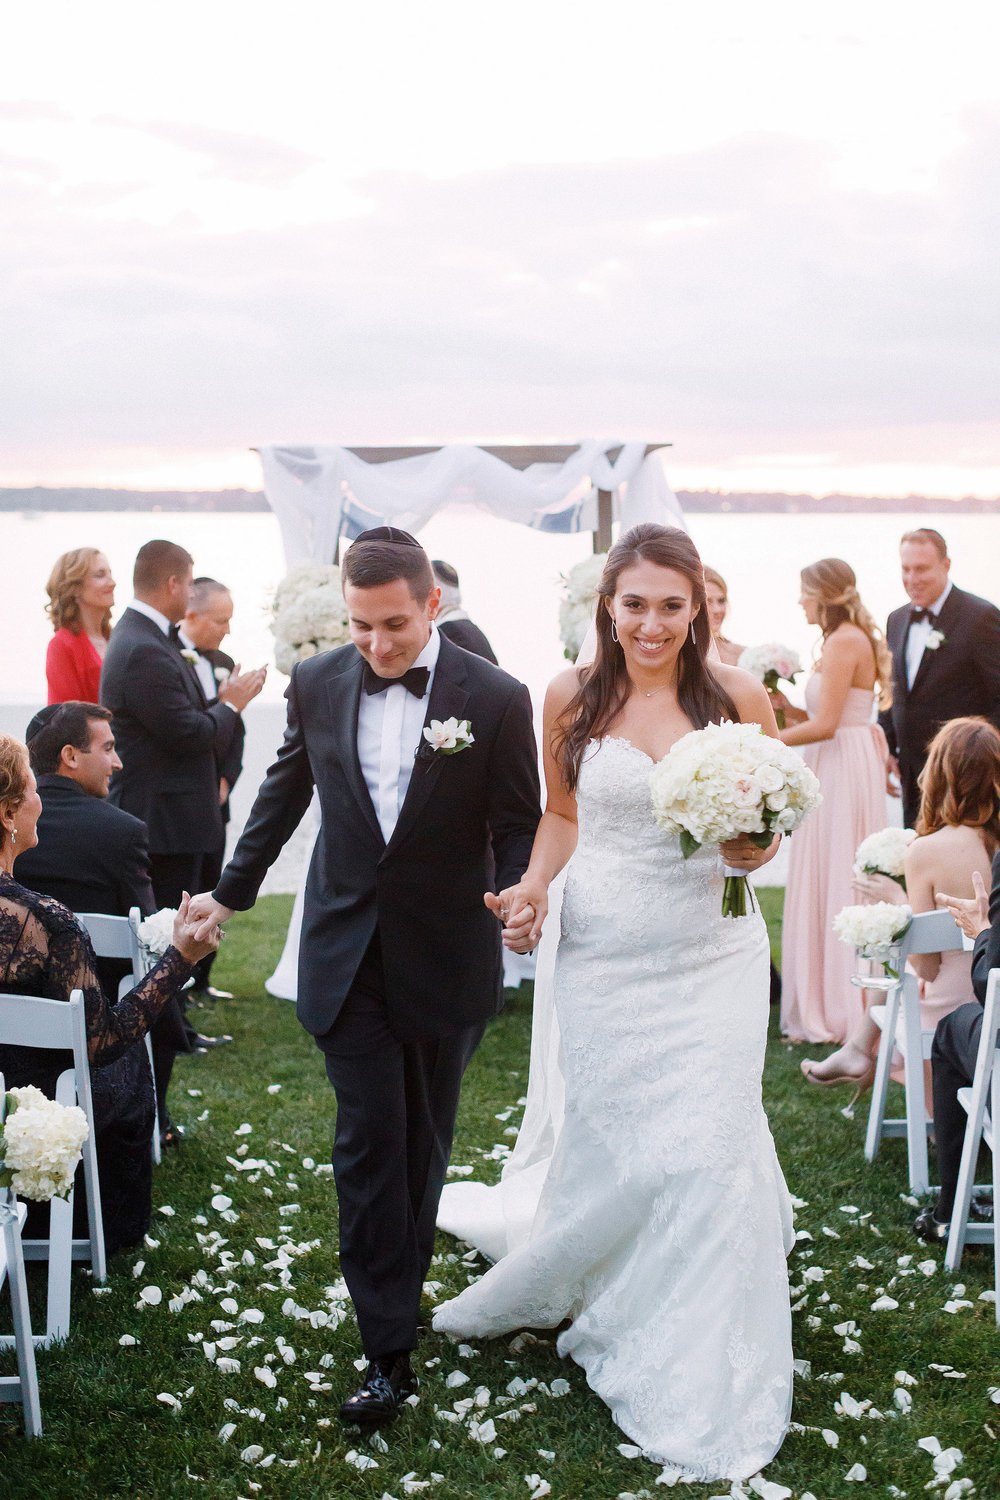 J and M were thrilled to be in the moment with each other and their loved ones.